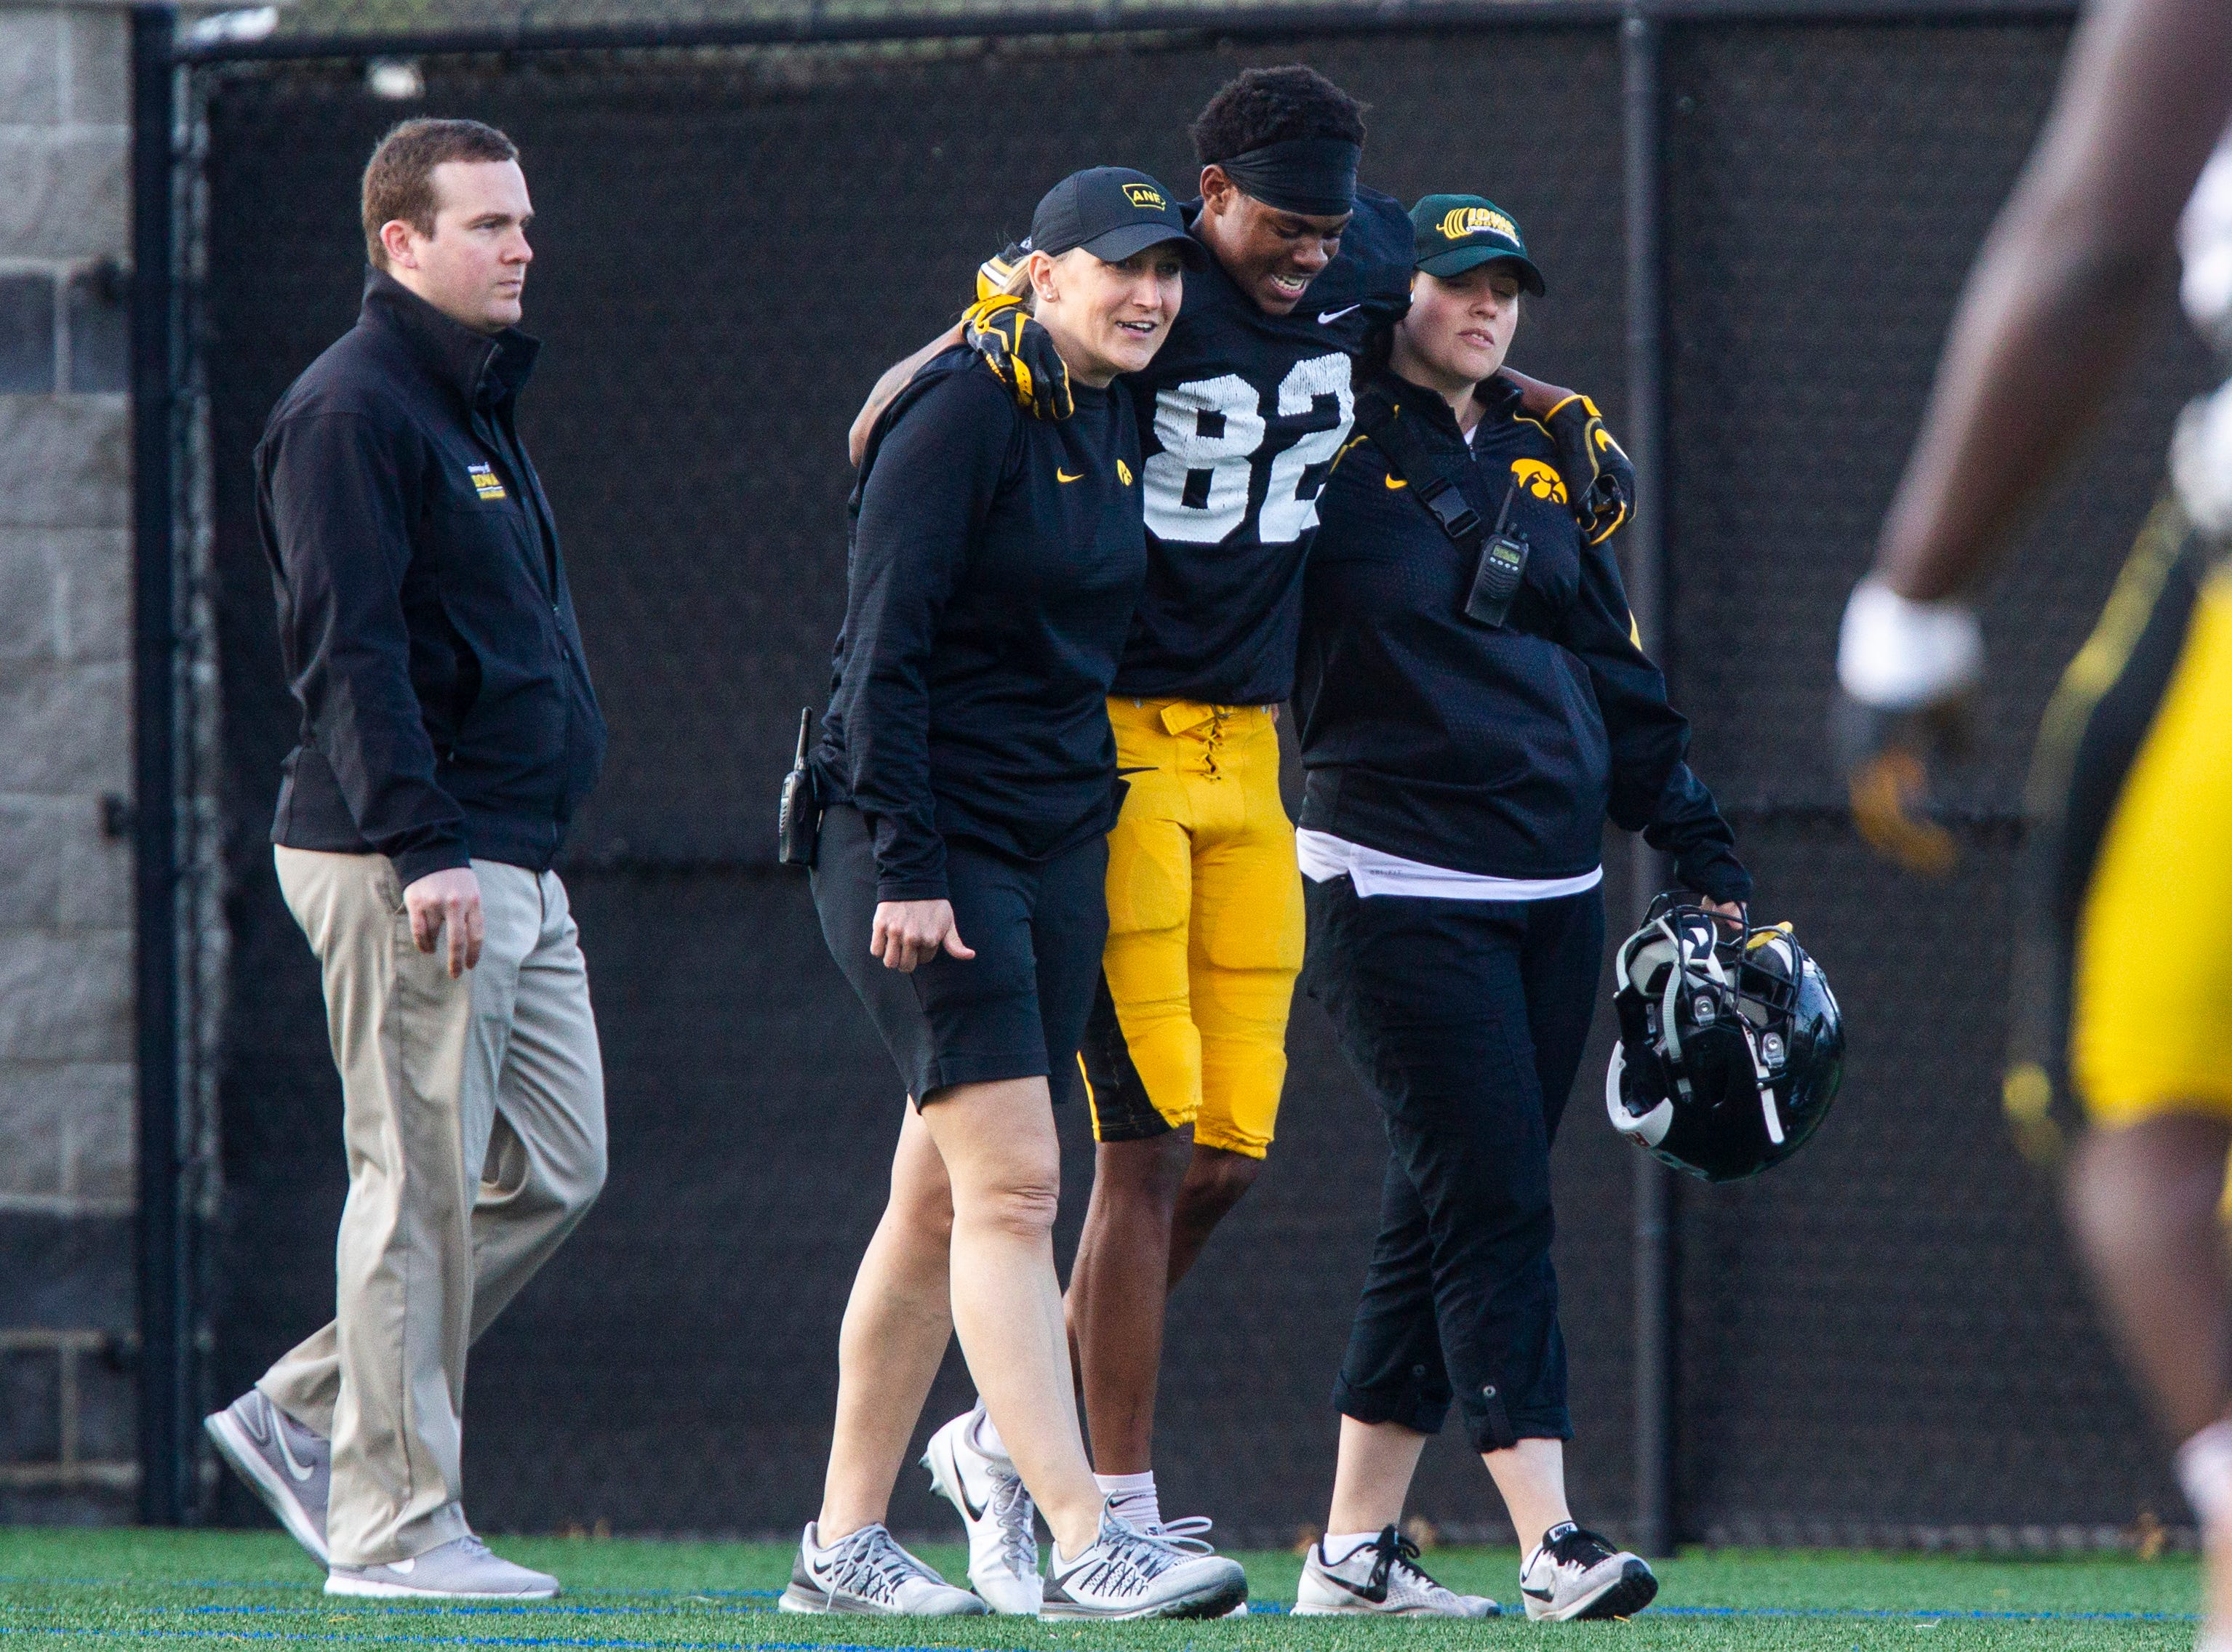 Iowa wide receiver Calvin Lockett (82) gets helped off the field by staff after getting tangled up on a contested ball during the final spring football practice, Friday, April 26, 2019, at the University of Iowa outdoor practice facility in Iowa City, Iowa.